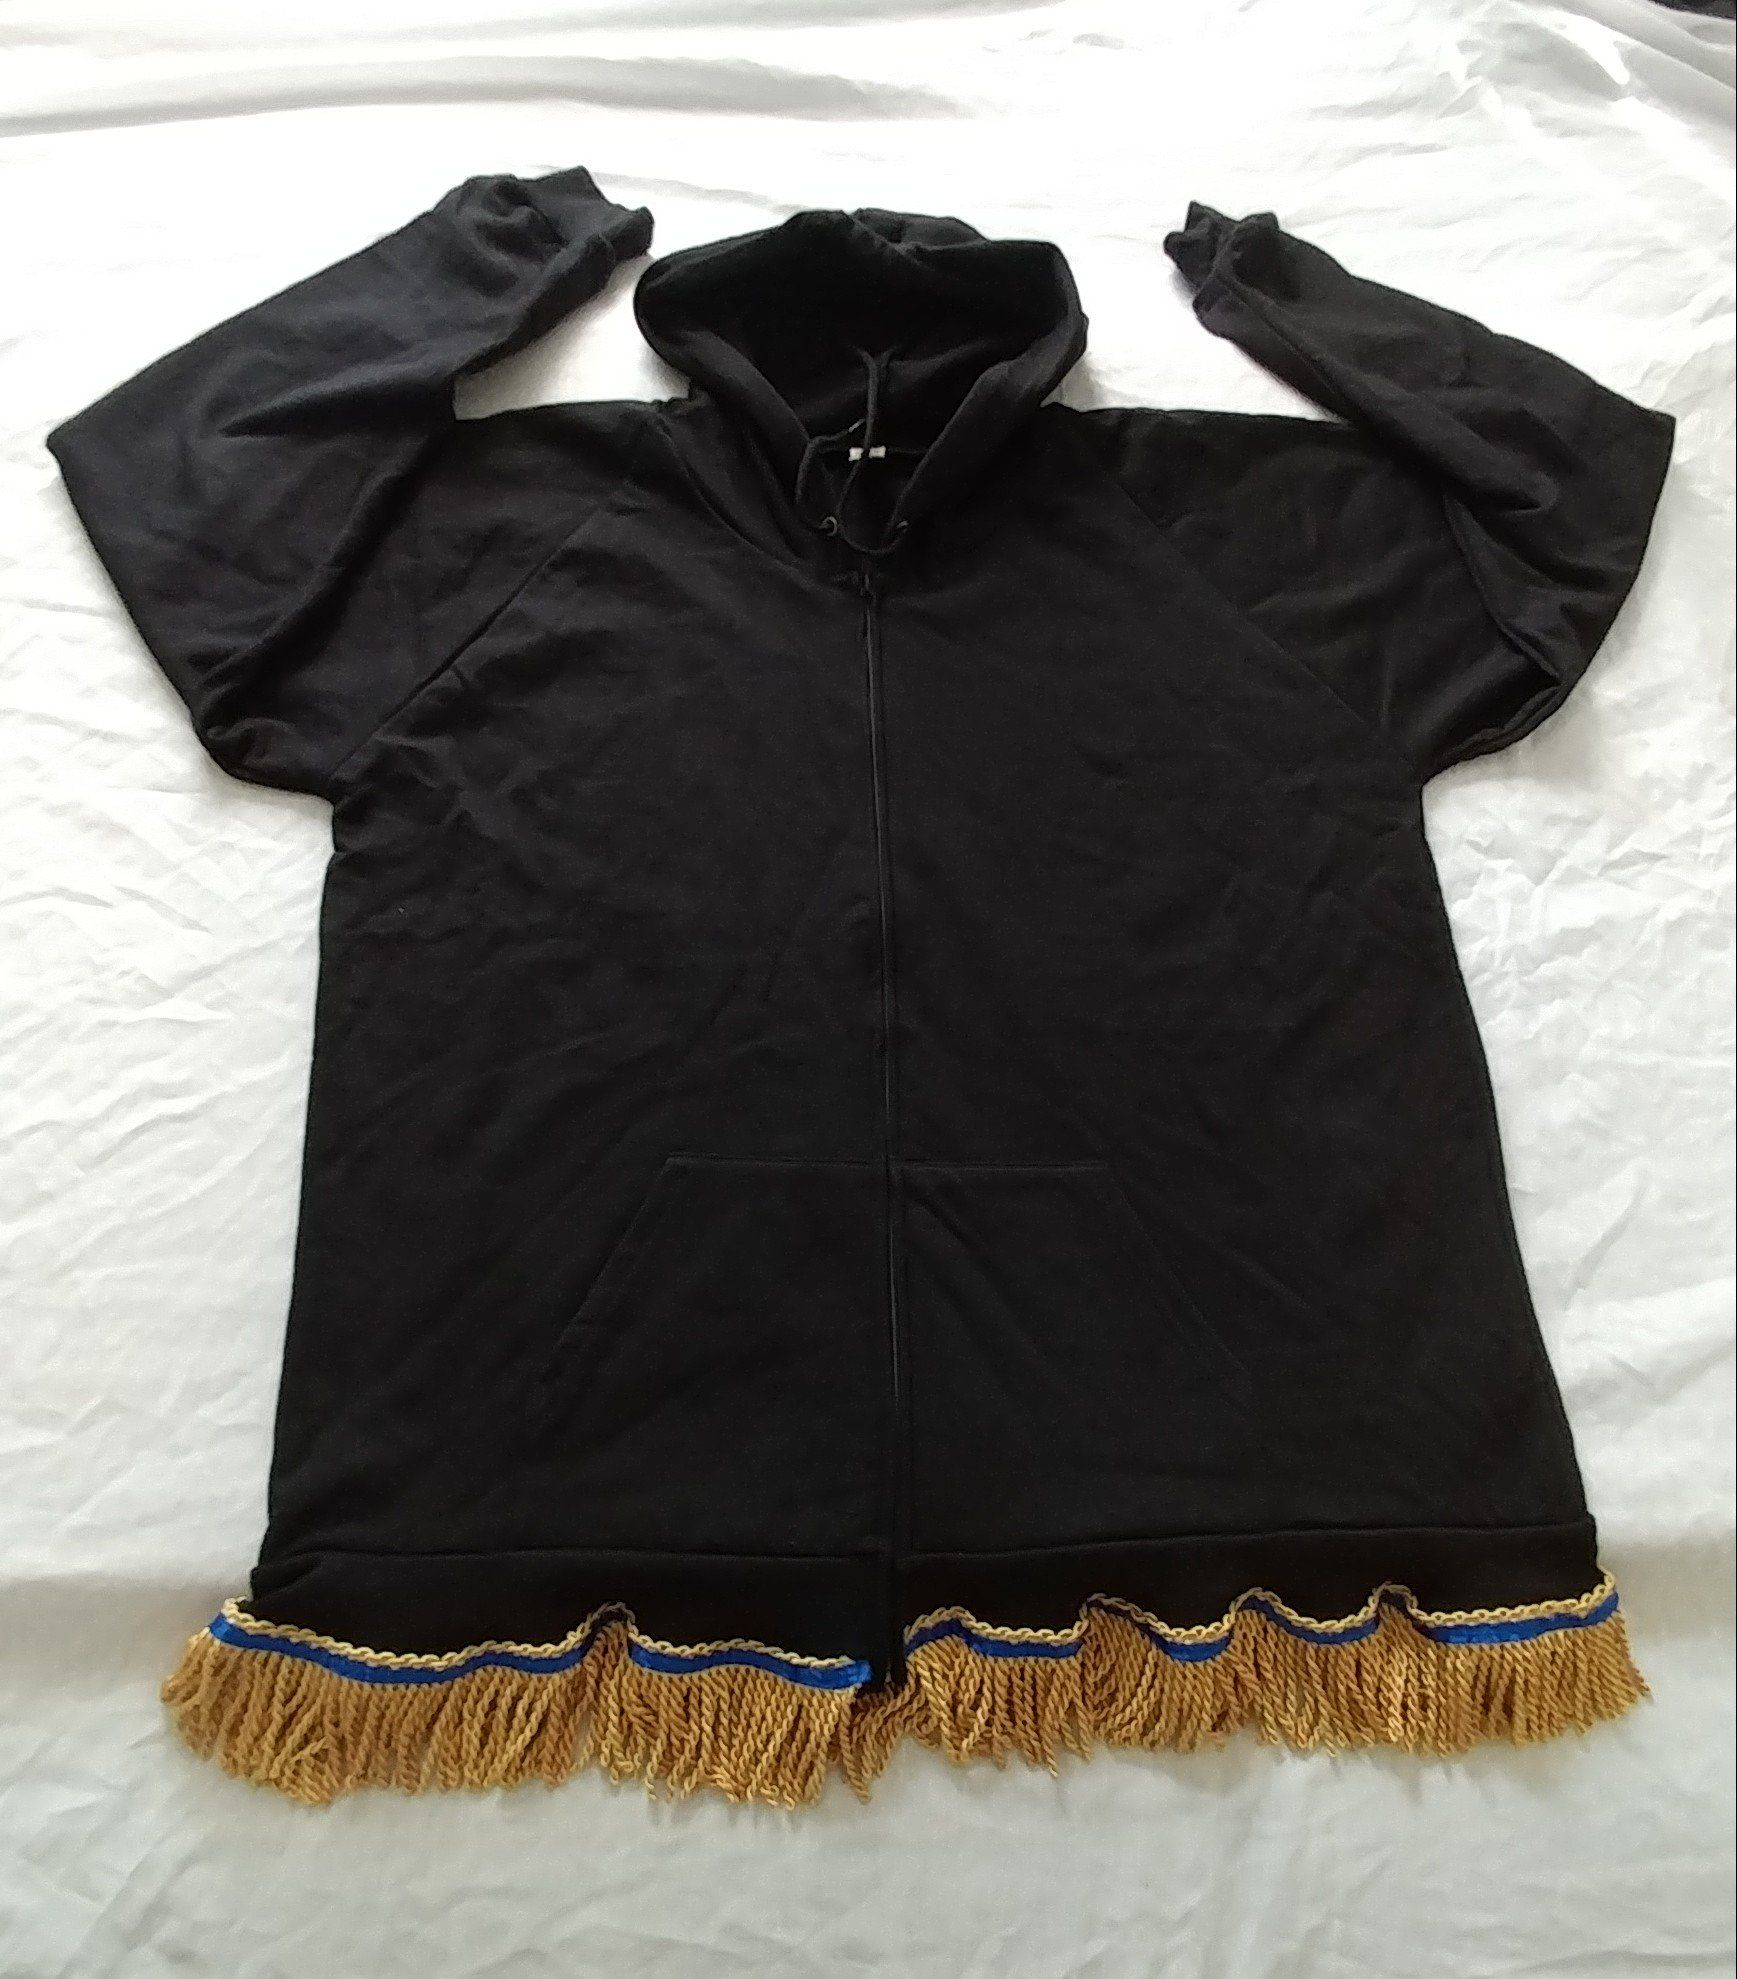 Hebrew Israelite Hooded Sweatshirt w/ Premium Gold or Black Fringes U9uS5